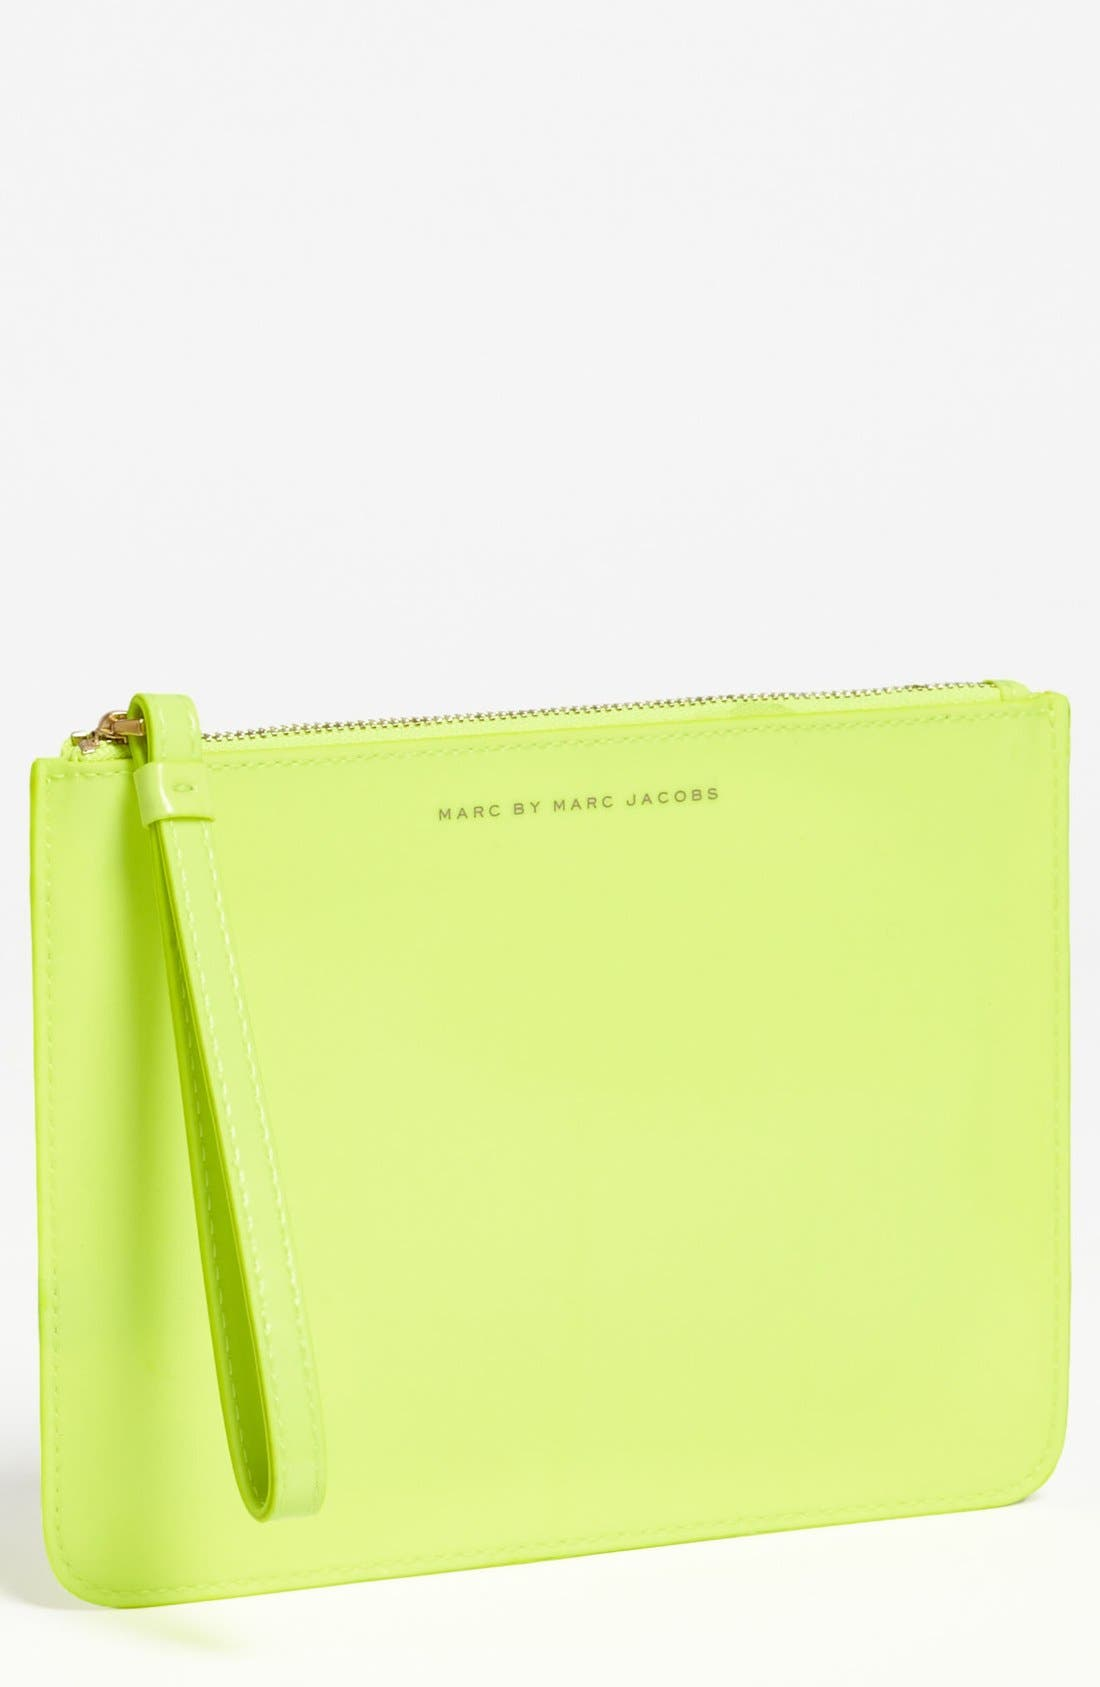 Main Image - MARC BY MARC JACOBS 'It's Back' Wristlet Pouch